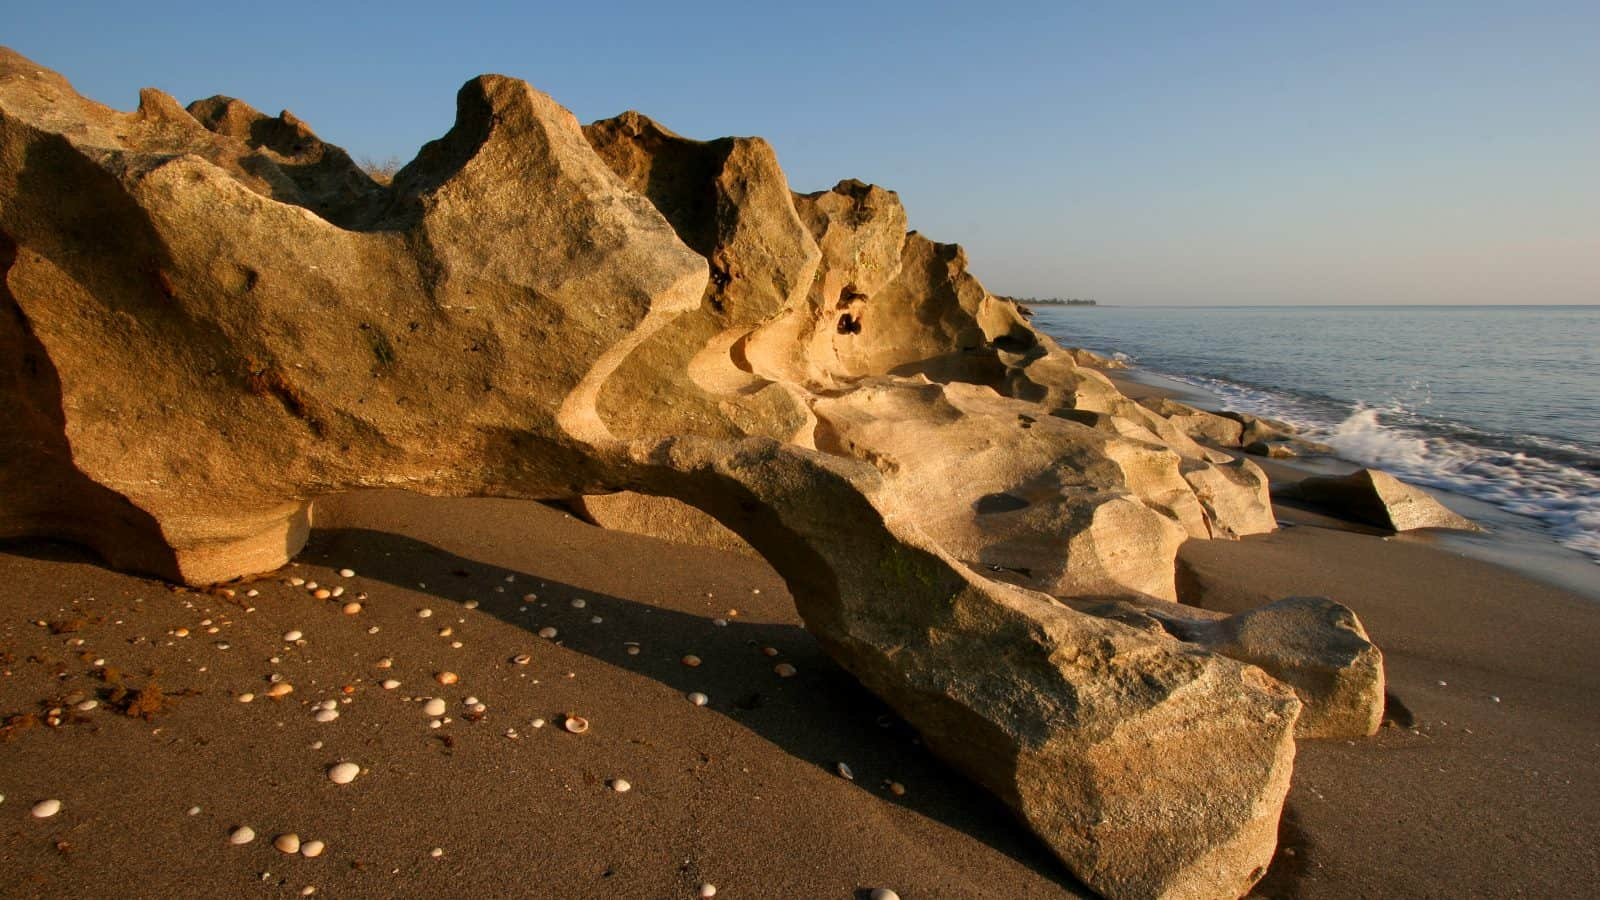 The limestone formations sit upon the dark sands of Blowing Rocks Preserve